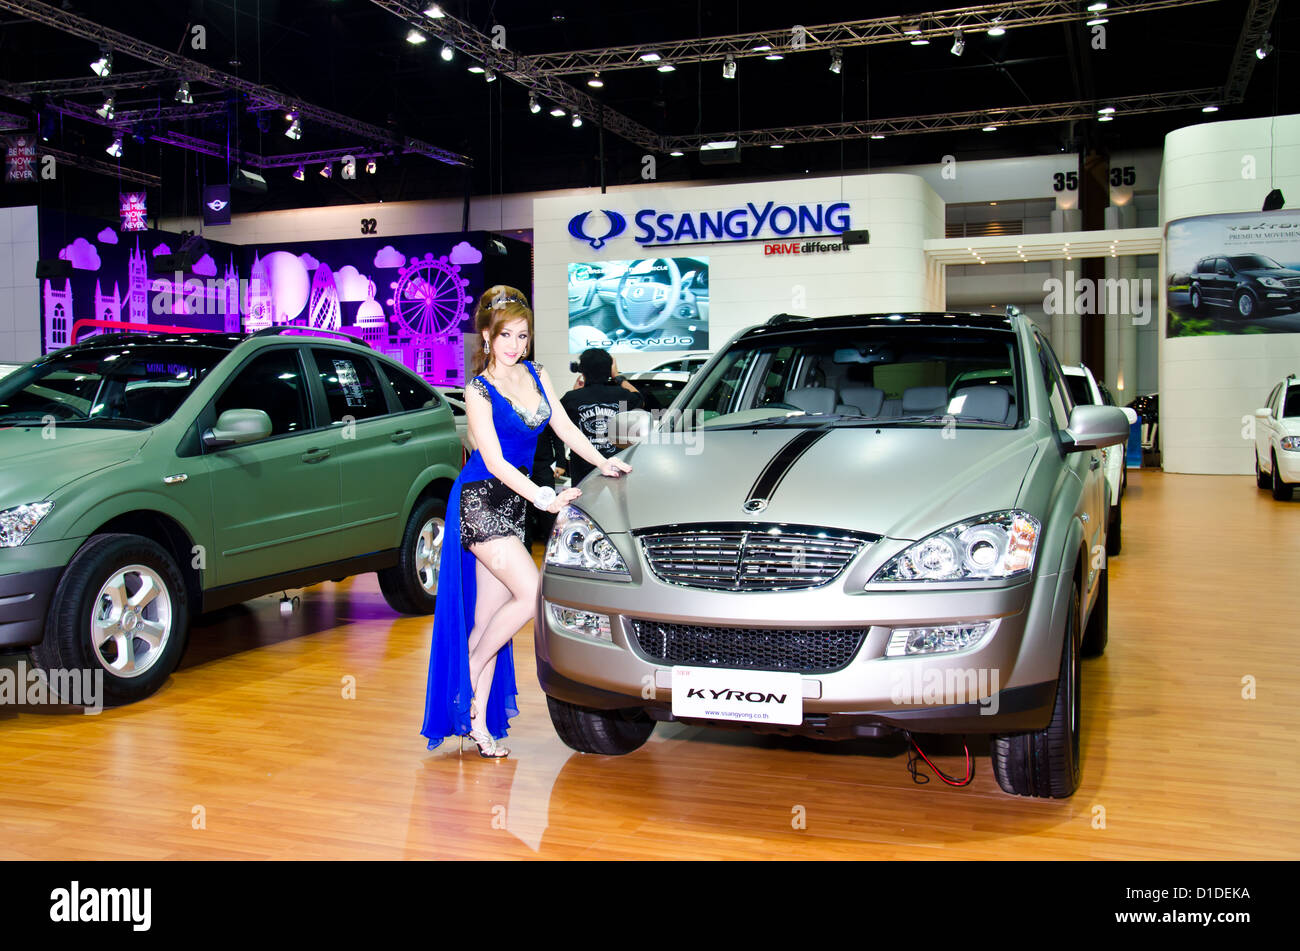 Ssanyong Kyron car with unidentified model on display at The 29th Thailand International Motor Expo on November - Stock Image